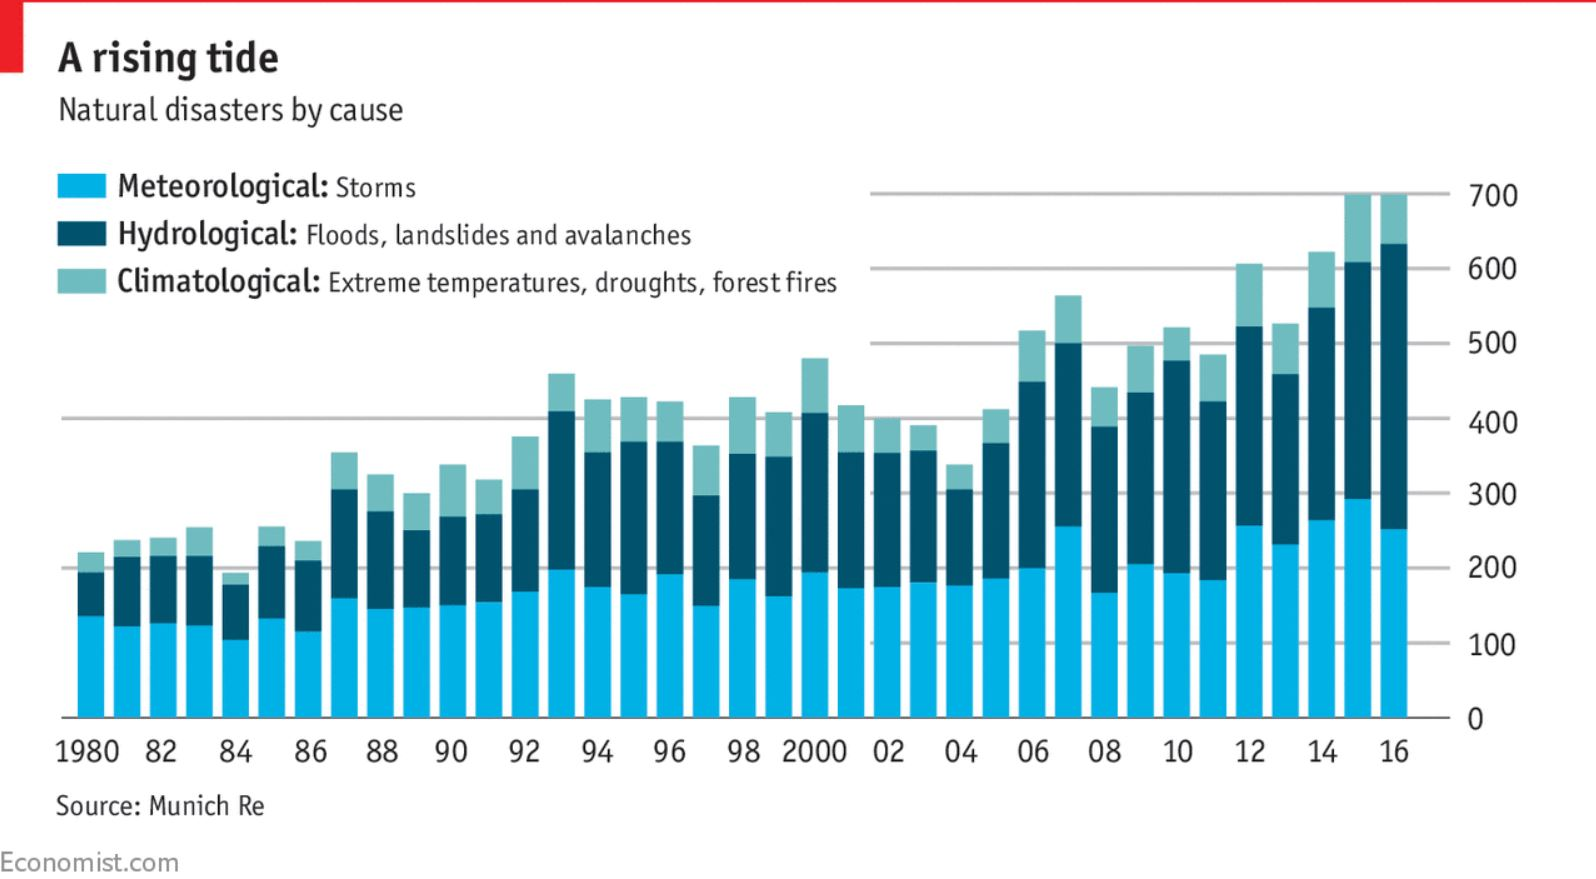 graph of increase in natural disasters and severe weather by cause from 1980 to 2016 from economist.com